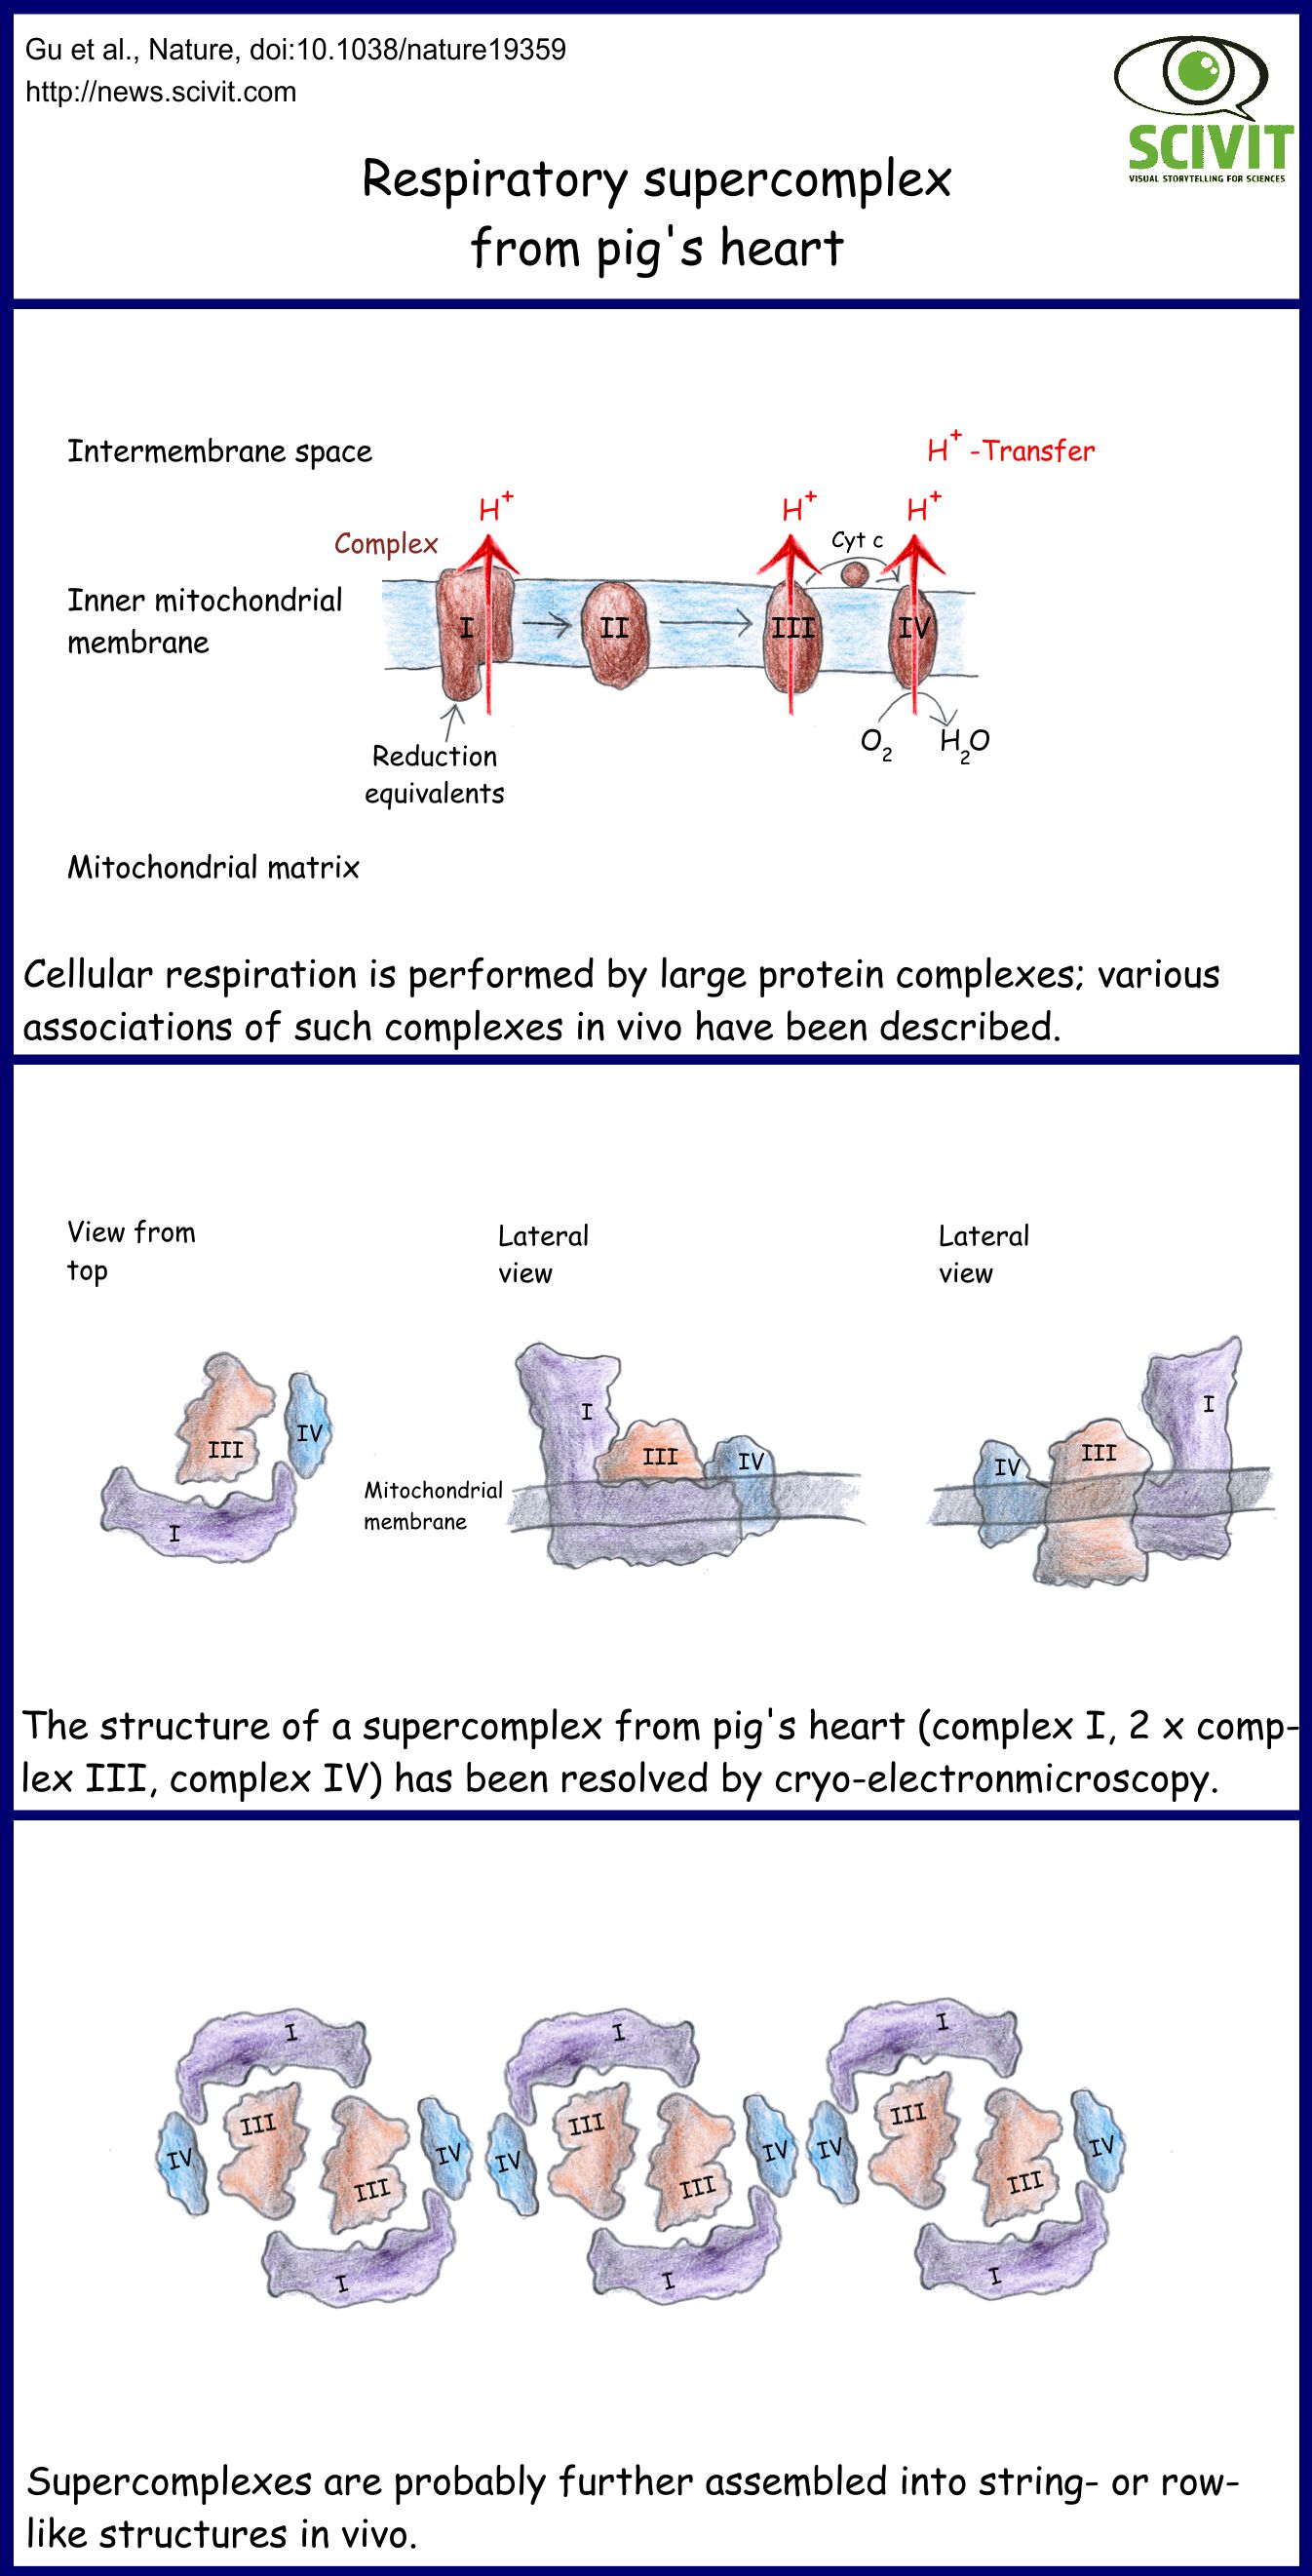 Respiratory supercomplex from pig's heart